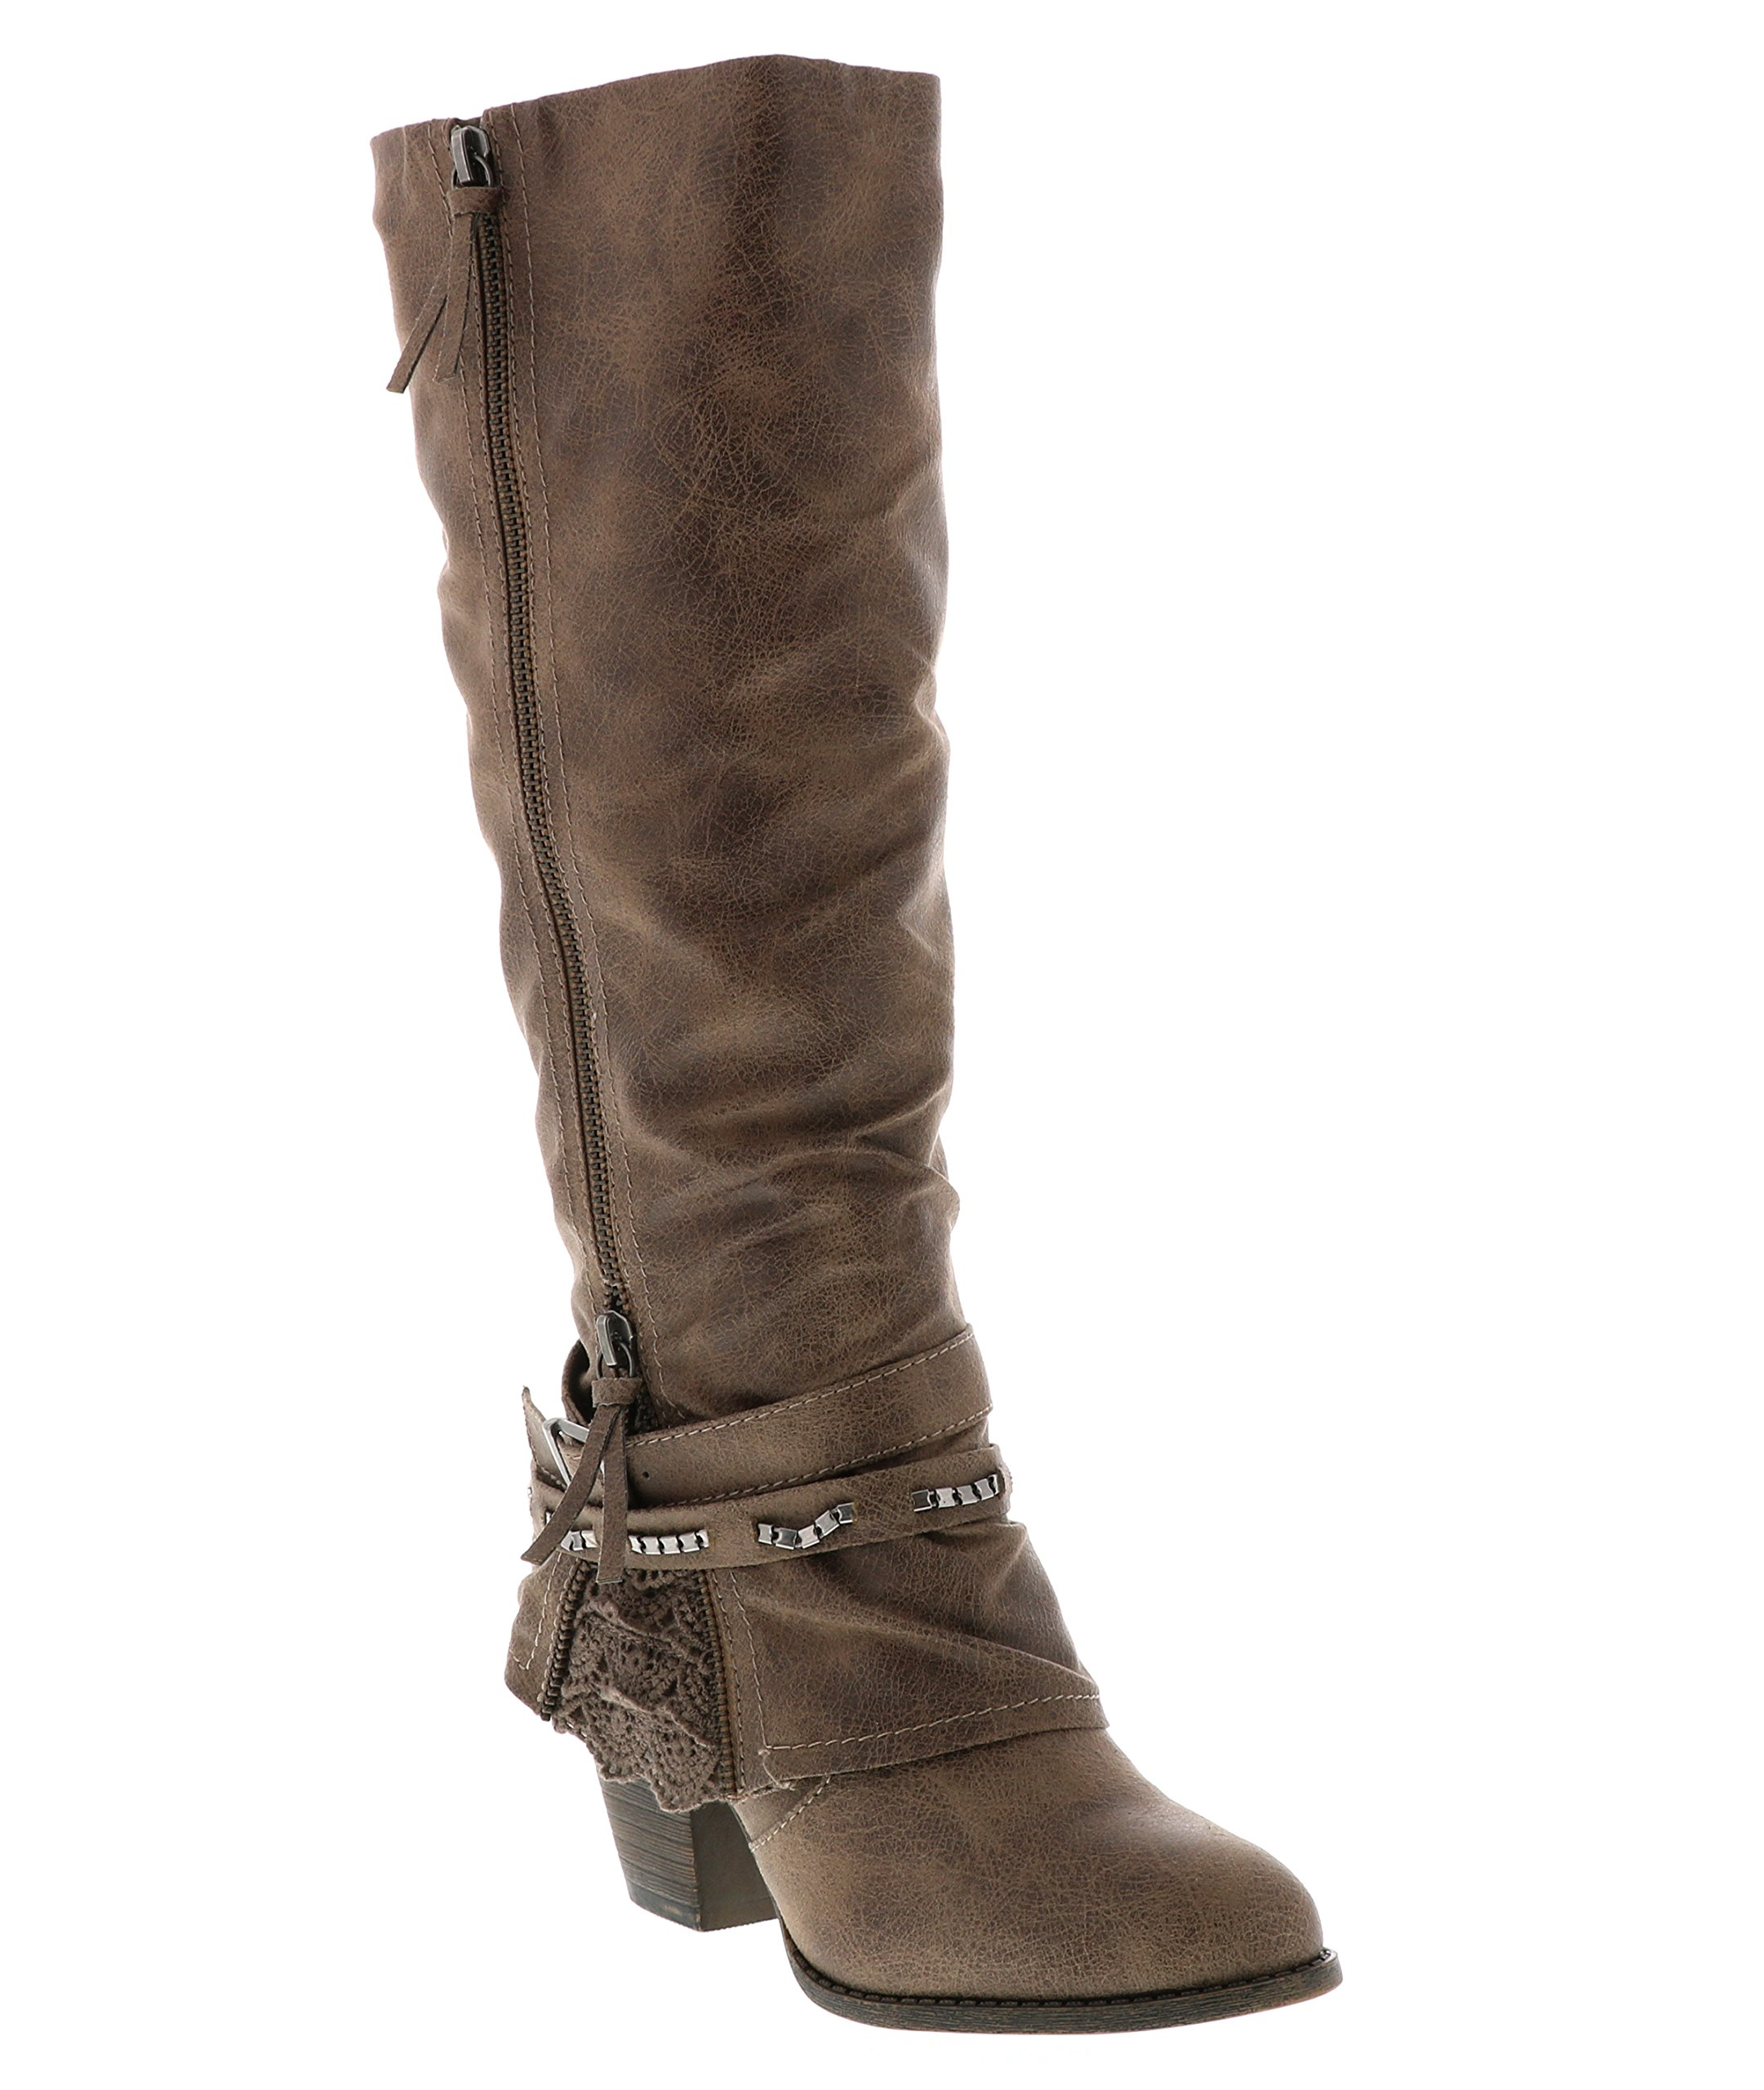 Jellypop Women's Carrly Engineer Boot, Stone Distressed Suede Like, 8 M US